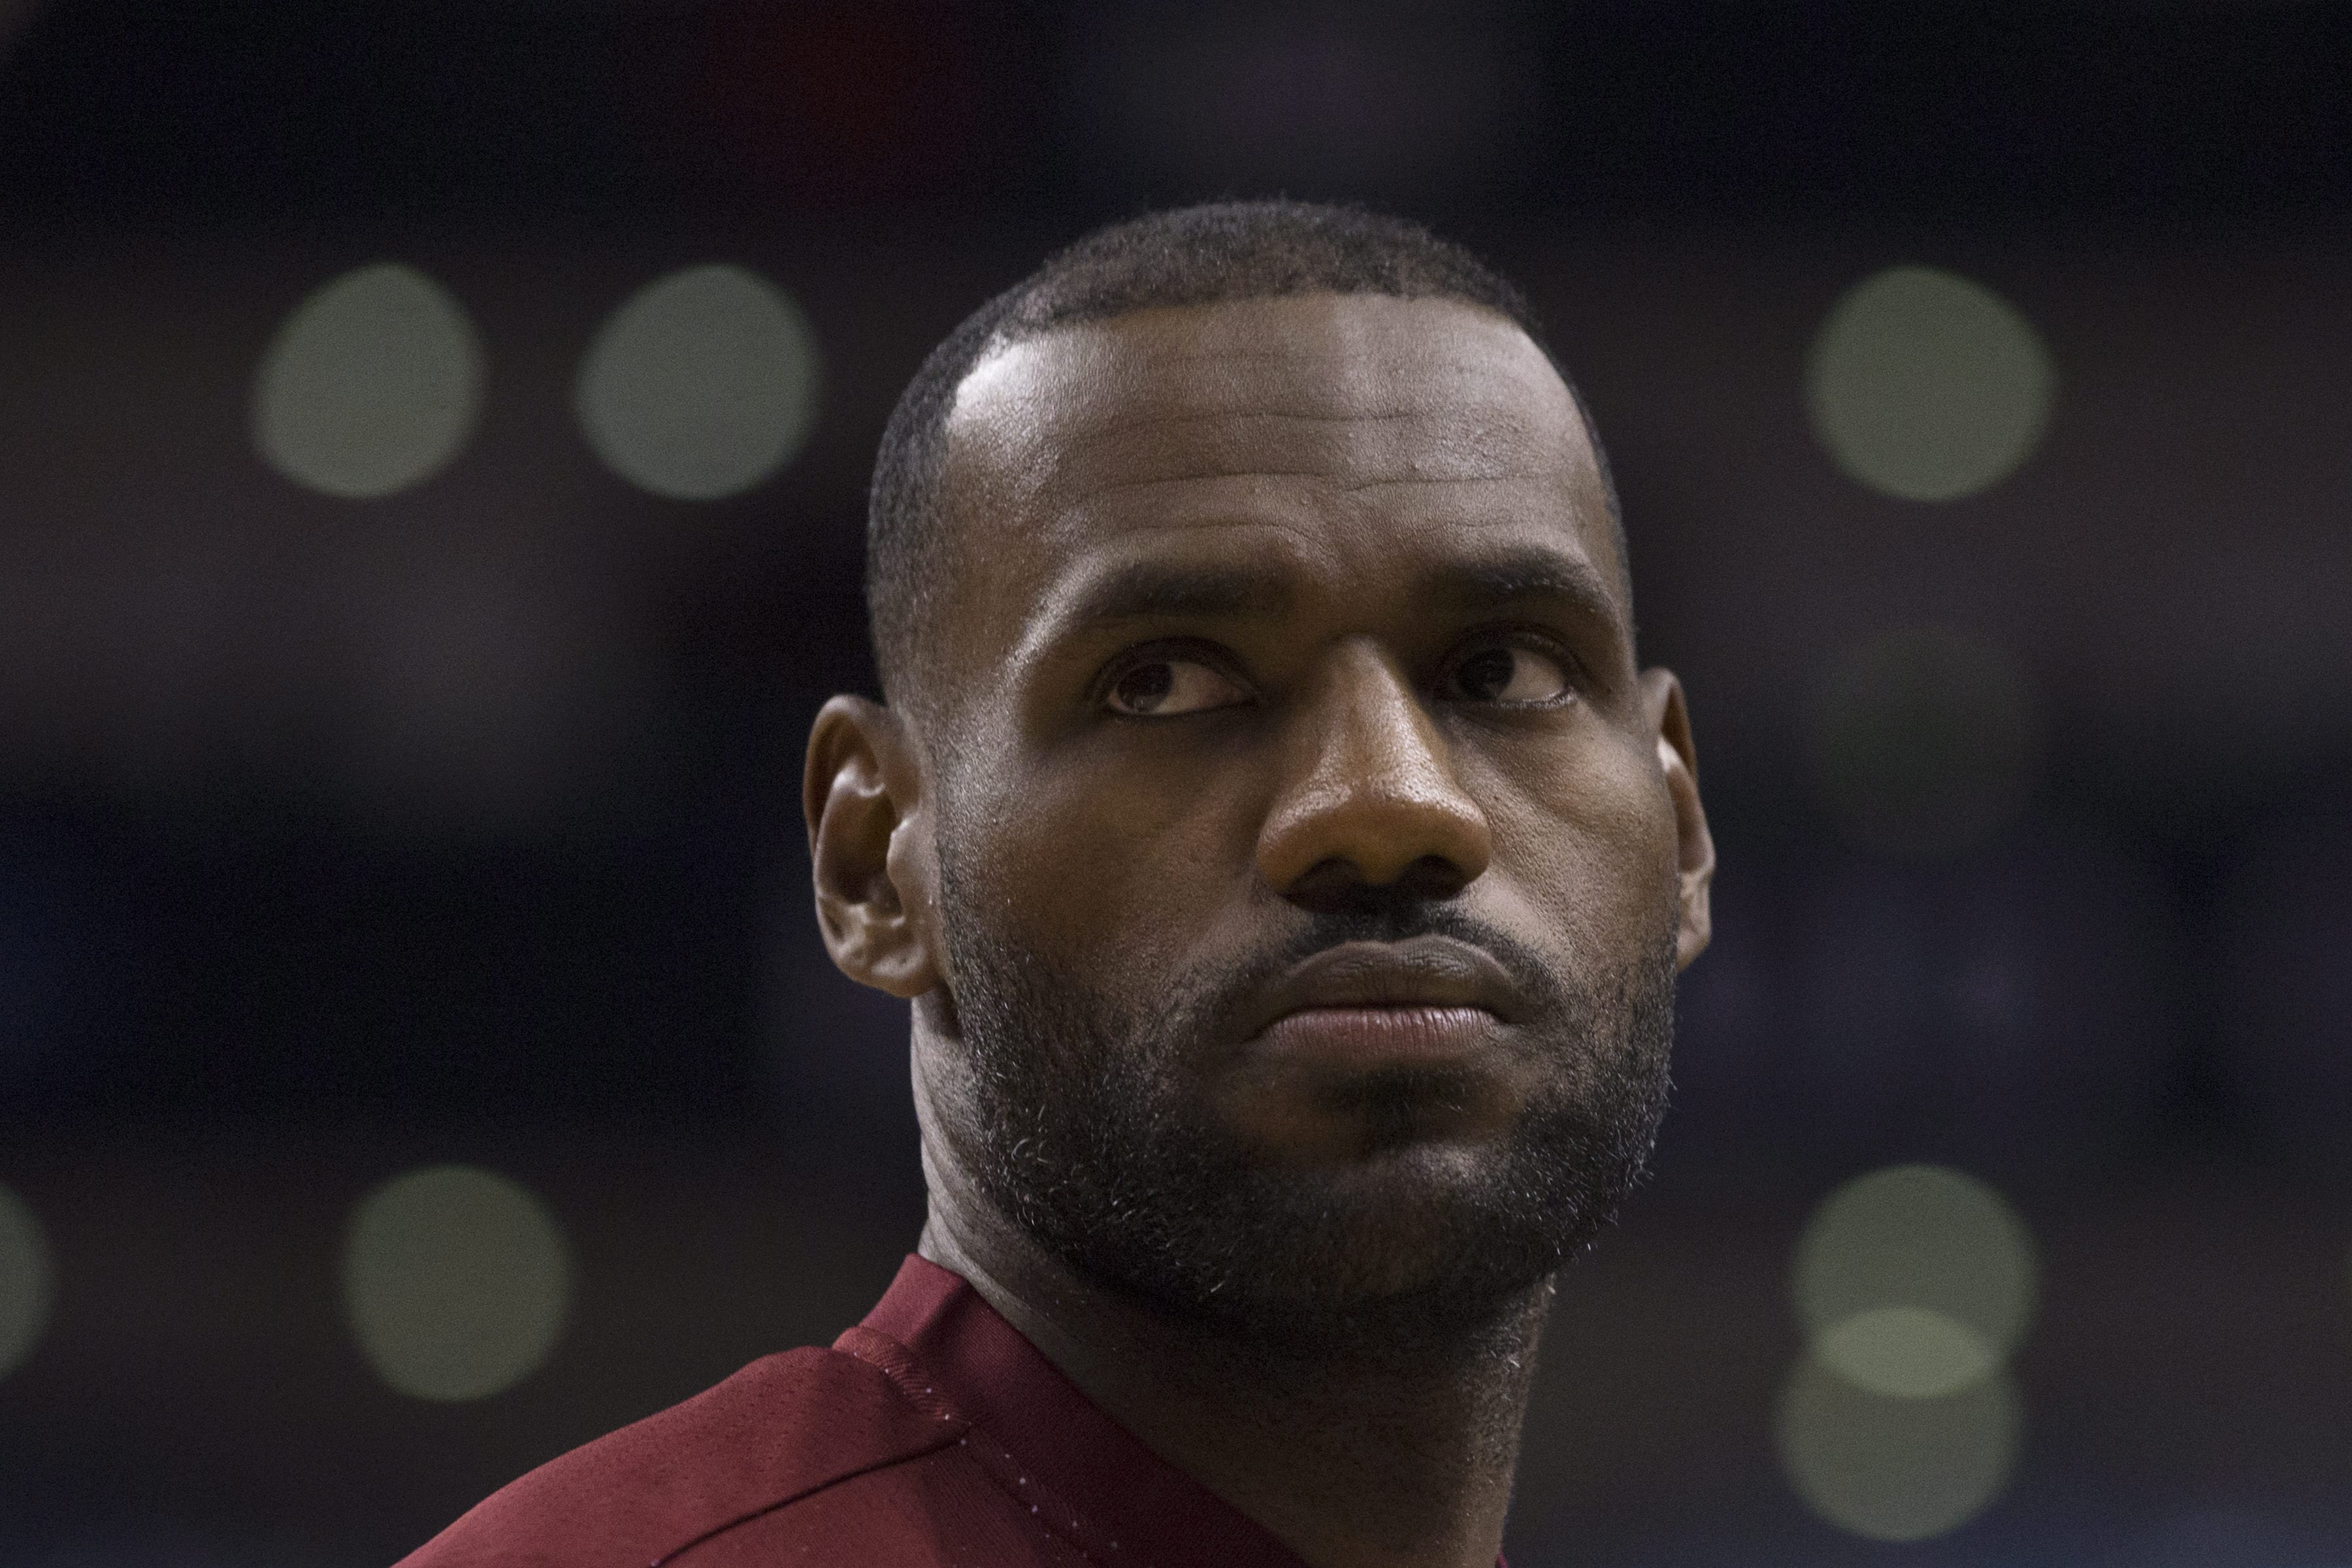 Cleveland Cavaliers' LeBron James stands on the edge of a team huddle during a timeout in first half of an NBA preseason basketball game against the Toronto Raptors in Toronto on Sunday, Oct. 18, 2015. (Chris Young/The Canadian Press via AP)